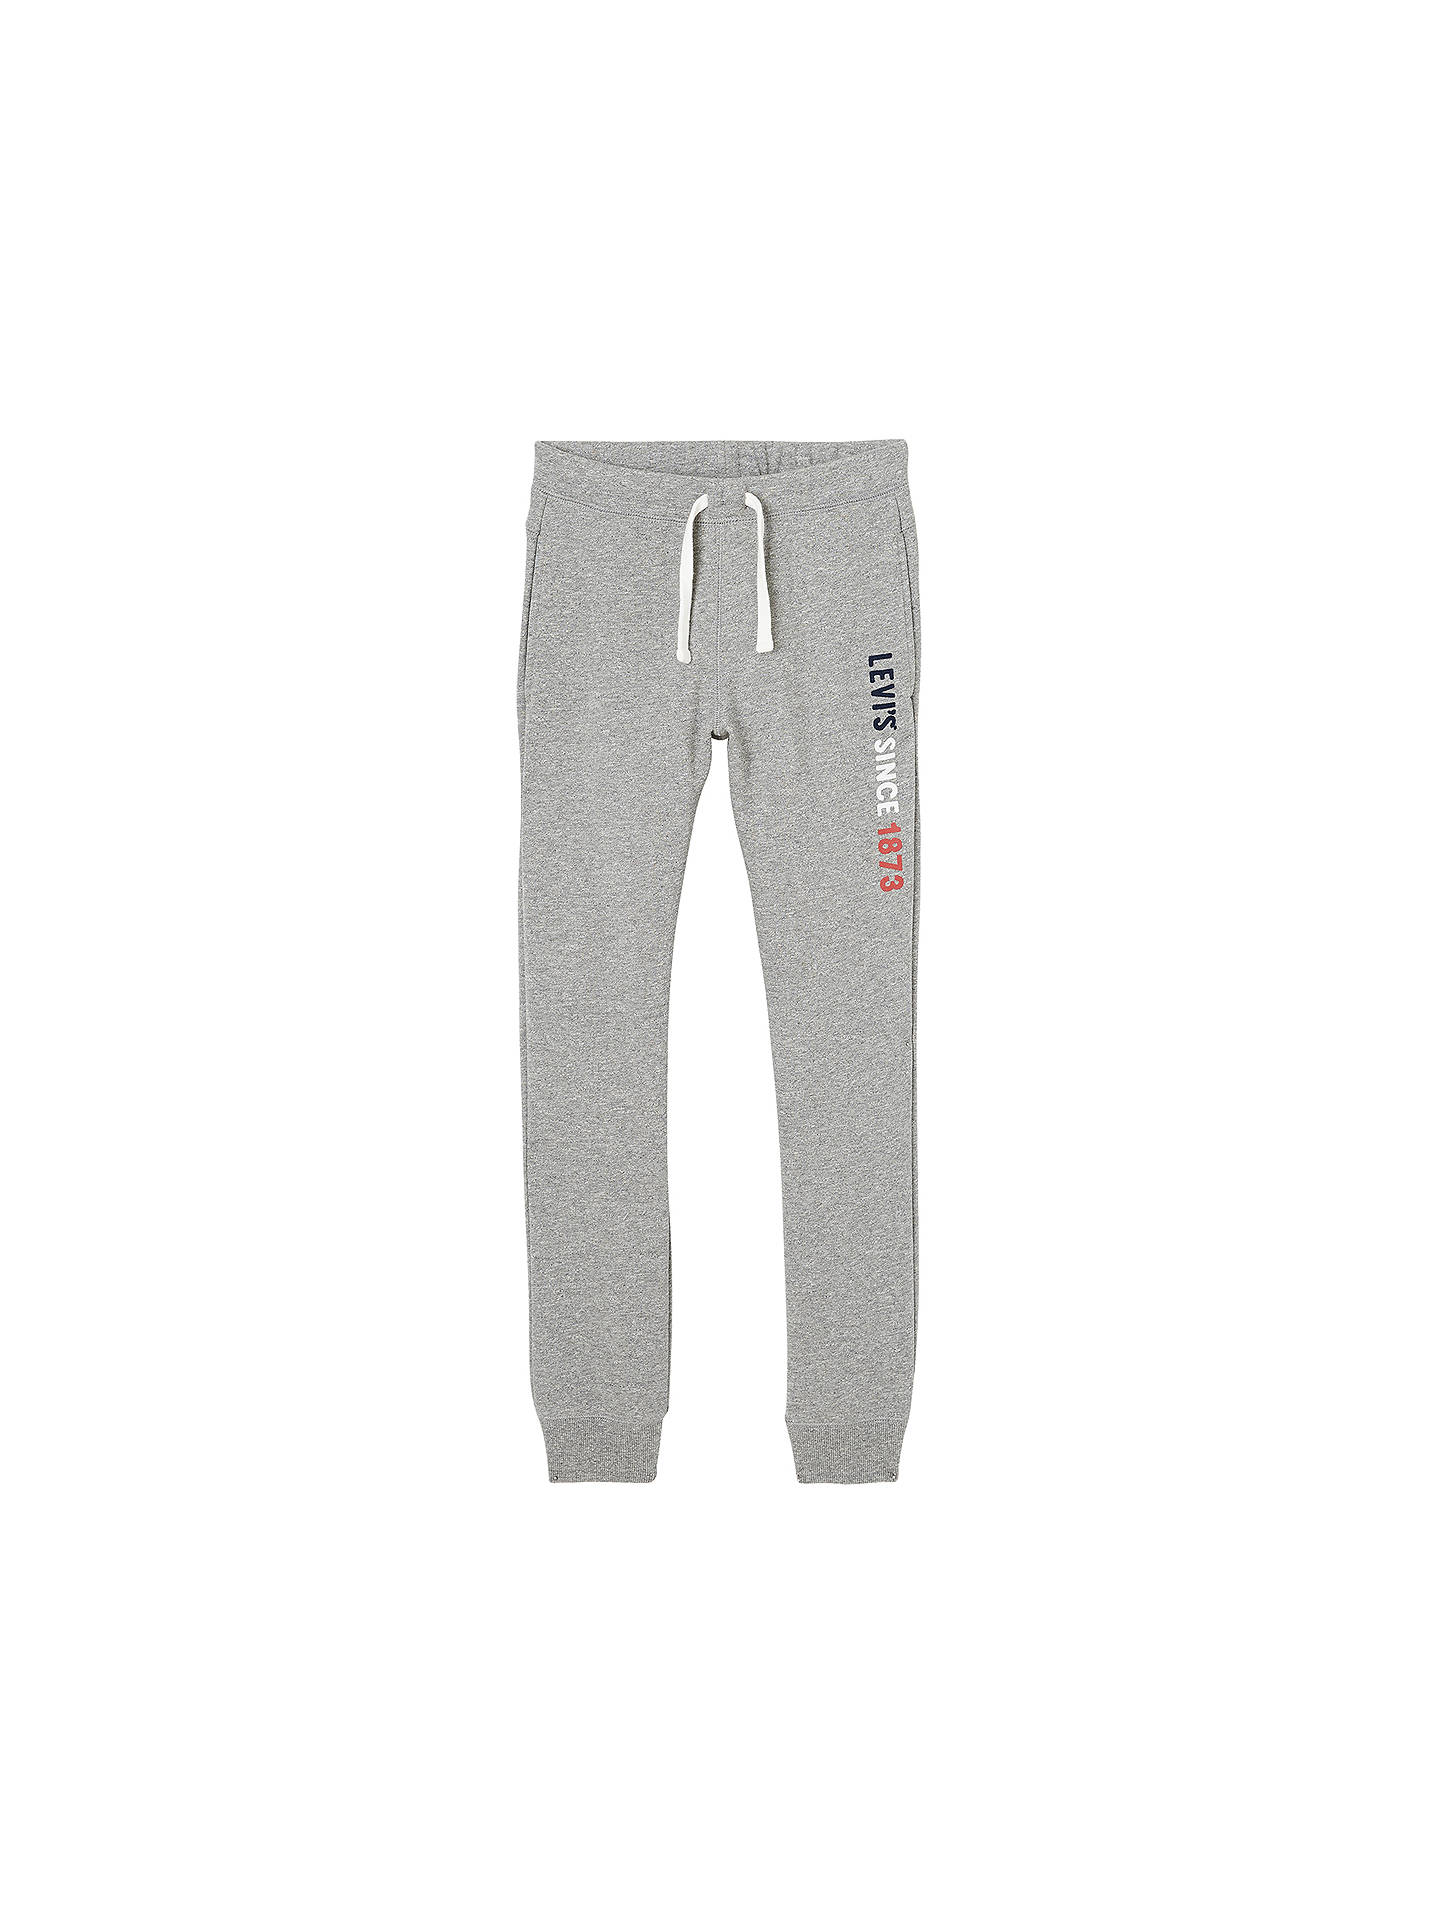 102d281ad Buy Levi's Boys' Corp Joggers, Grey, 4 years Online at johnlewis. ...